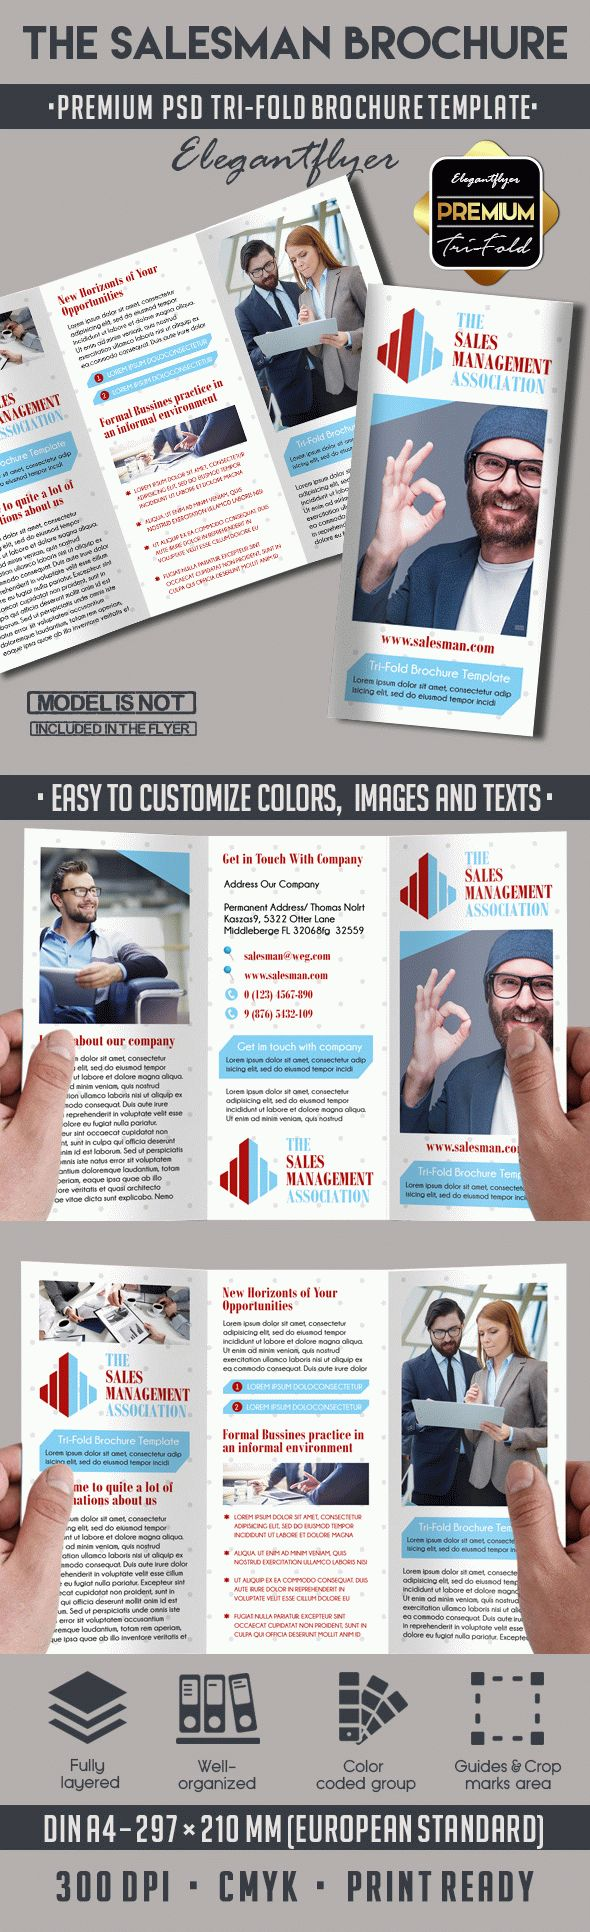 Tri-Fold Brochure for The Salesman